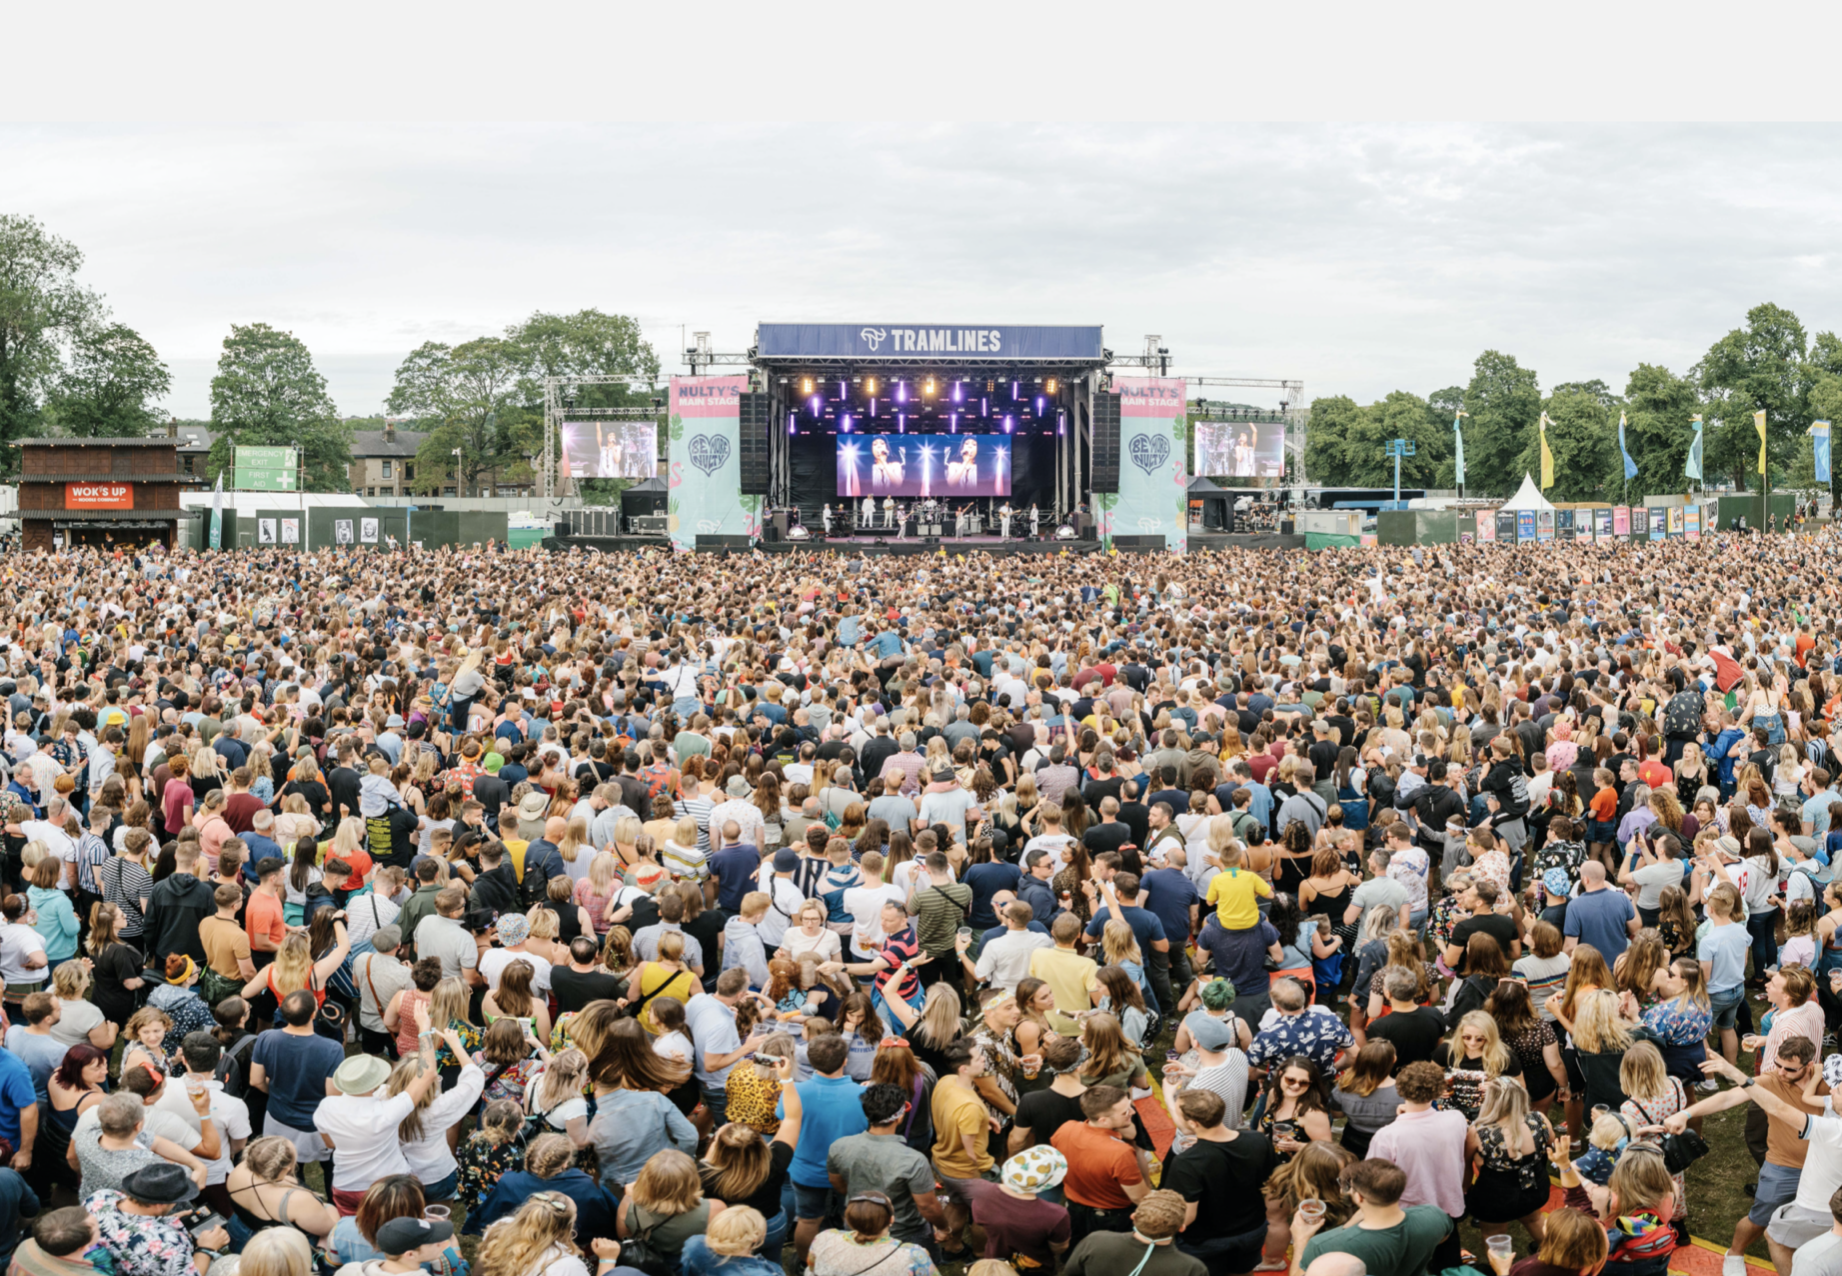 6 BANDS NOT TO BE MISSED AT THIS YEARS TRAMLINES